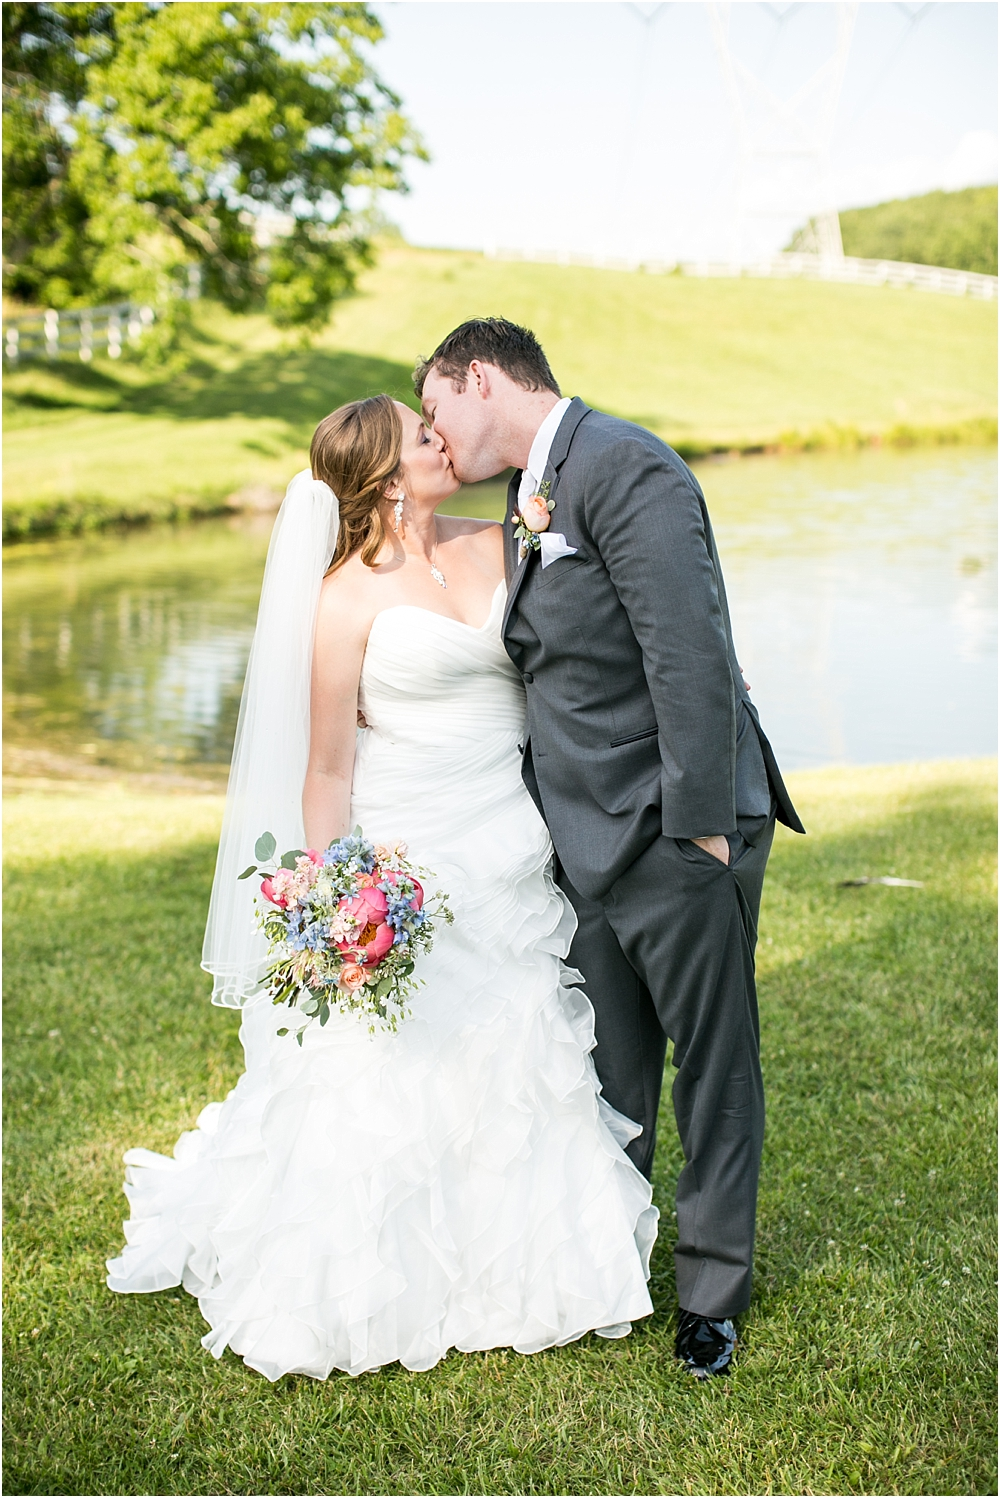 randolph wedding parkton private residence tent wedding living radiant photography photos_0062.jpg